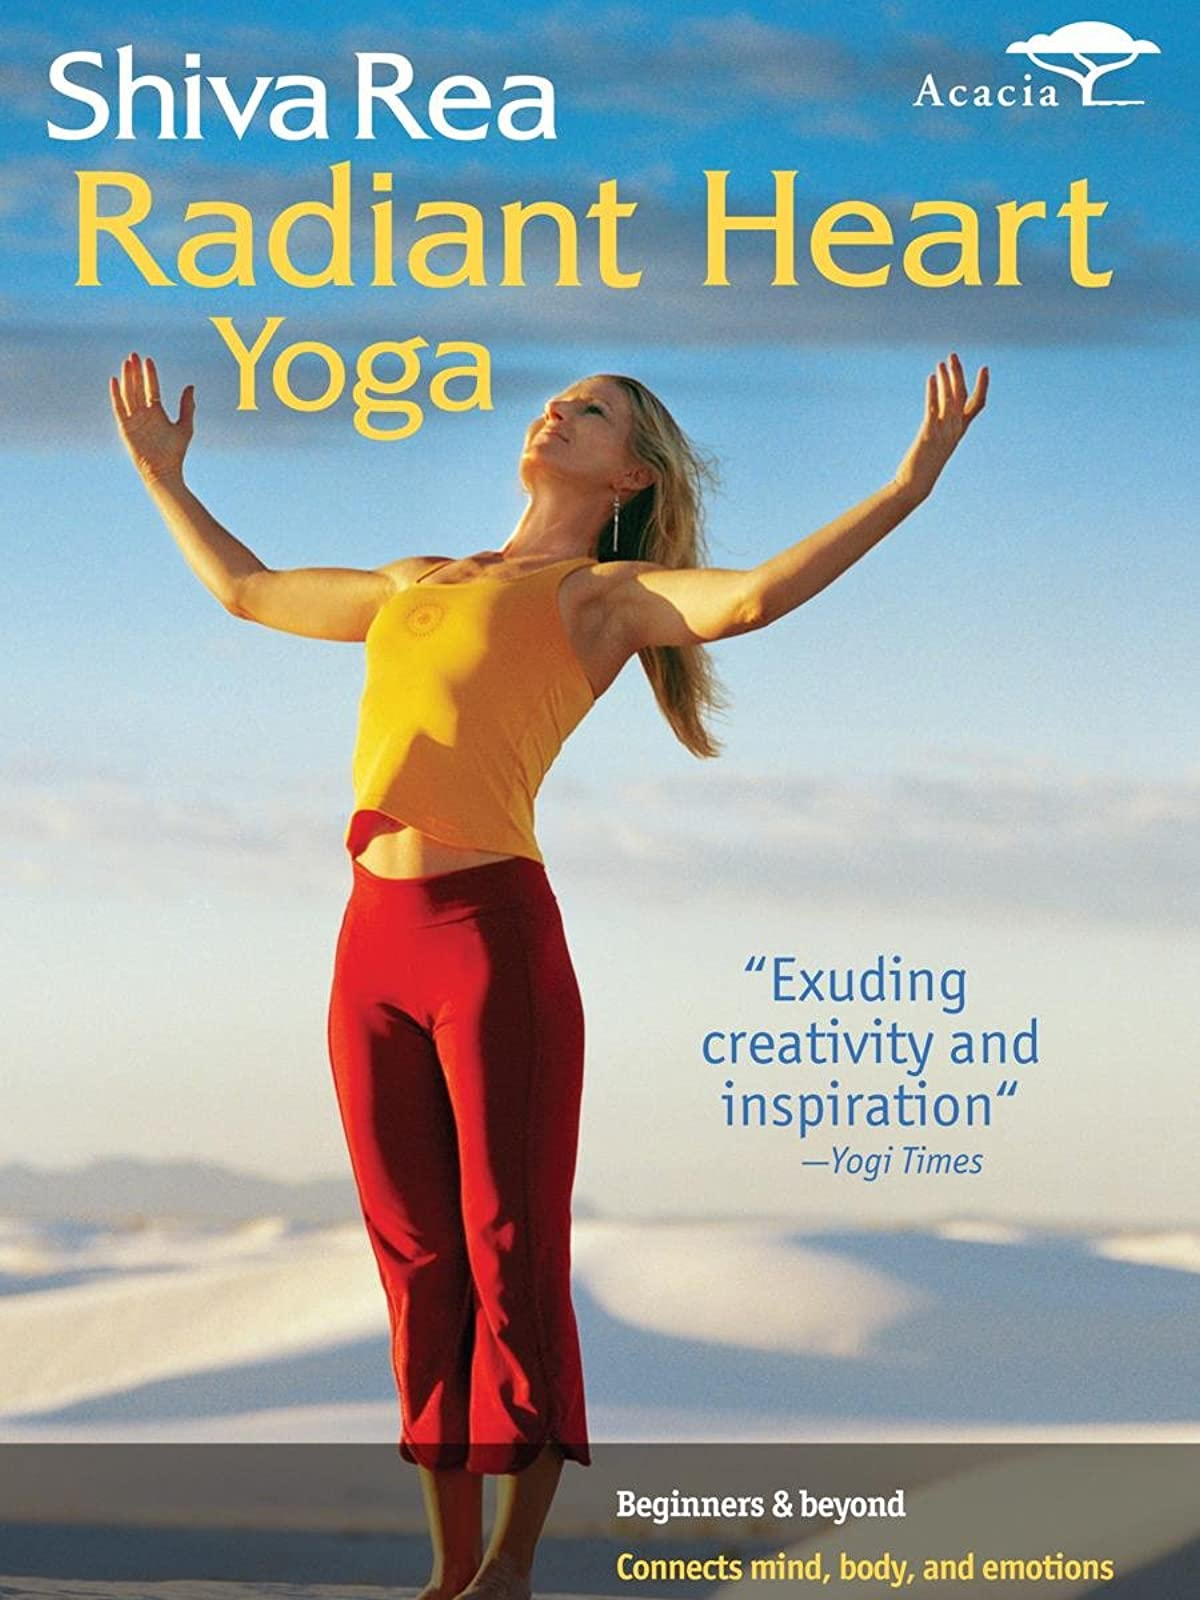 Amazon.com: Exhale: Core Fusion: Yoga: Fred DeVito ...